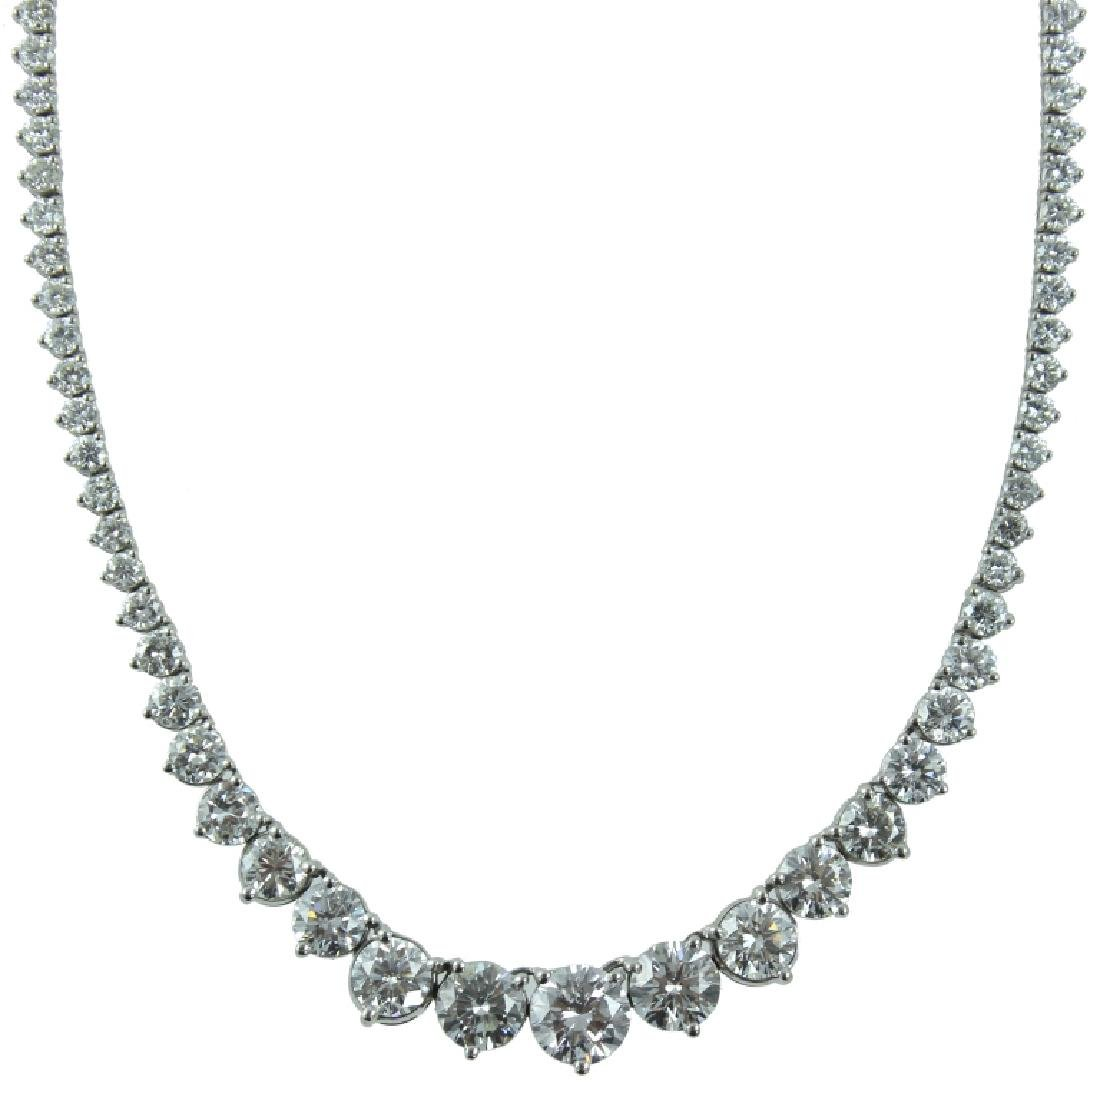 IMPRESSIVE ESTATE 25.00 CARAT DIAMOND CHOKER